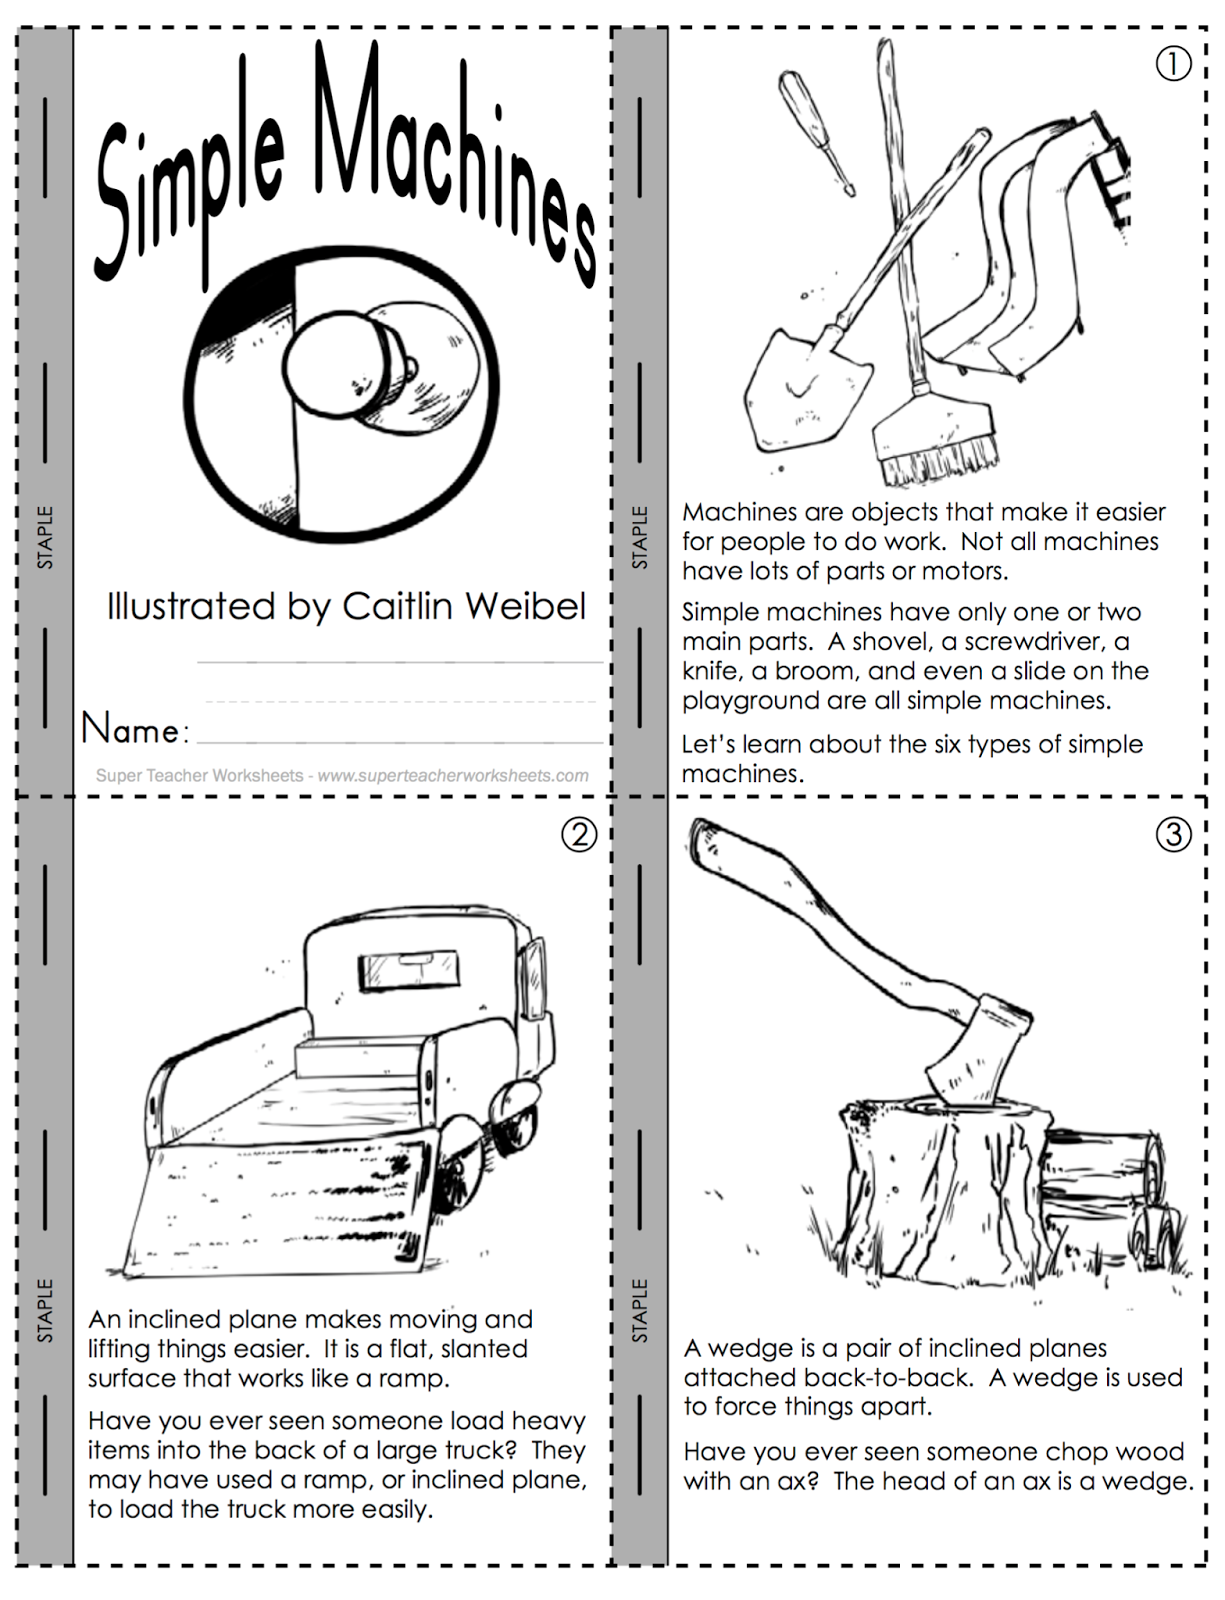 Collection of Work And Simple Machines Worksheet Sharebrowse – Simple Machines Worksheet